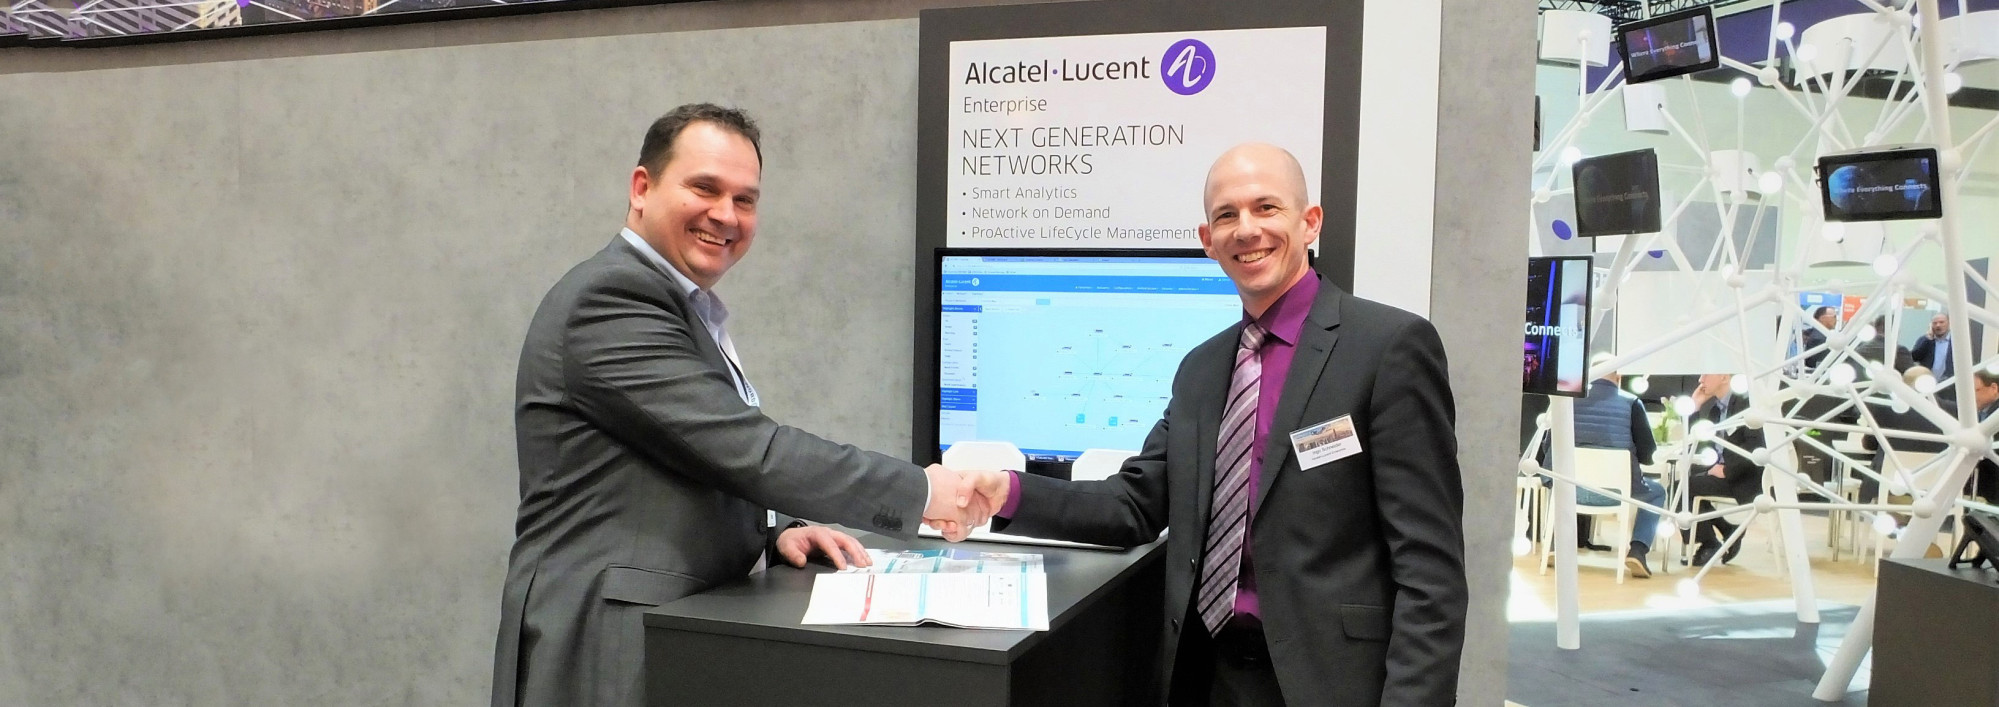 alcatel_messe